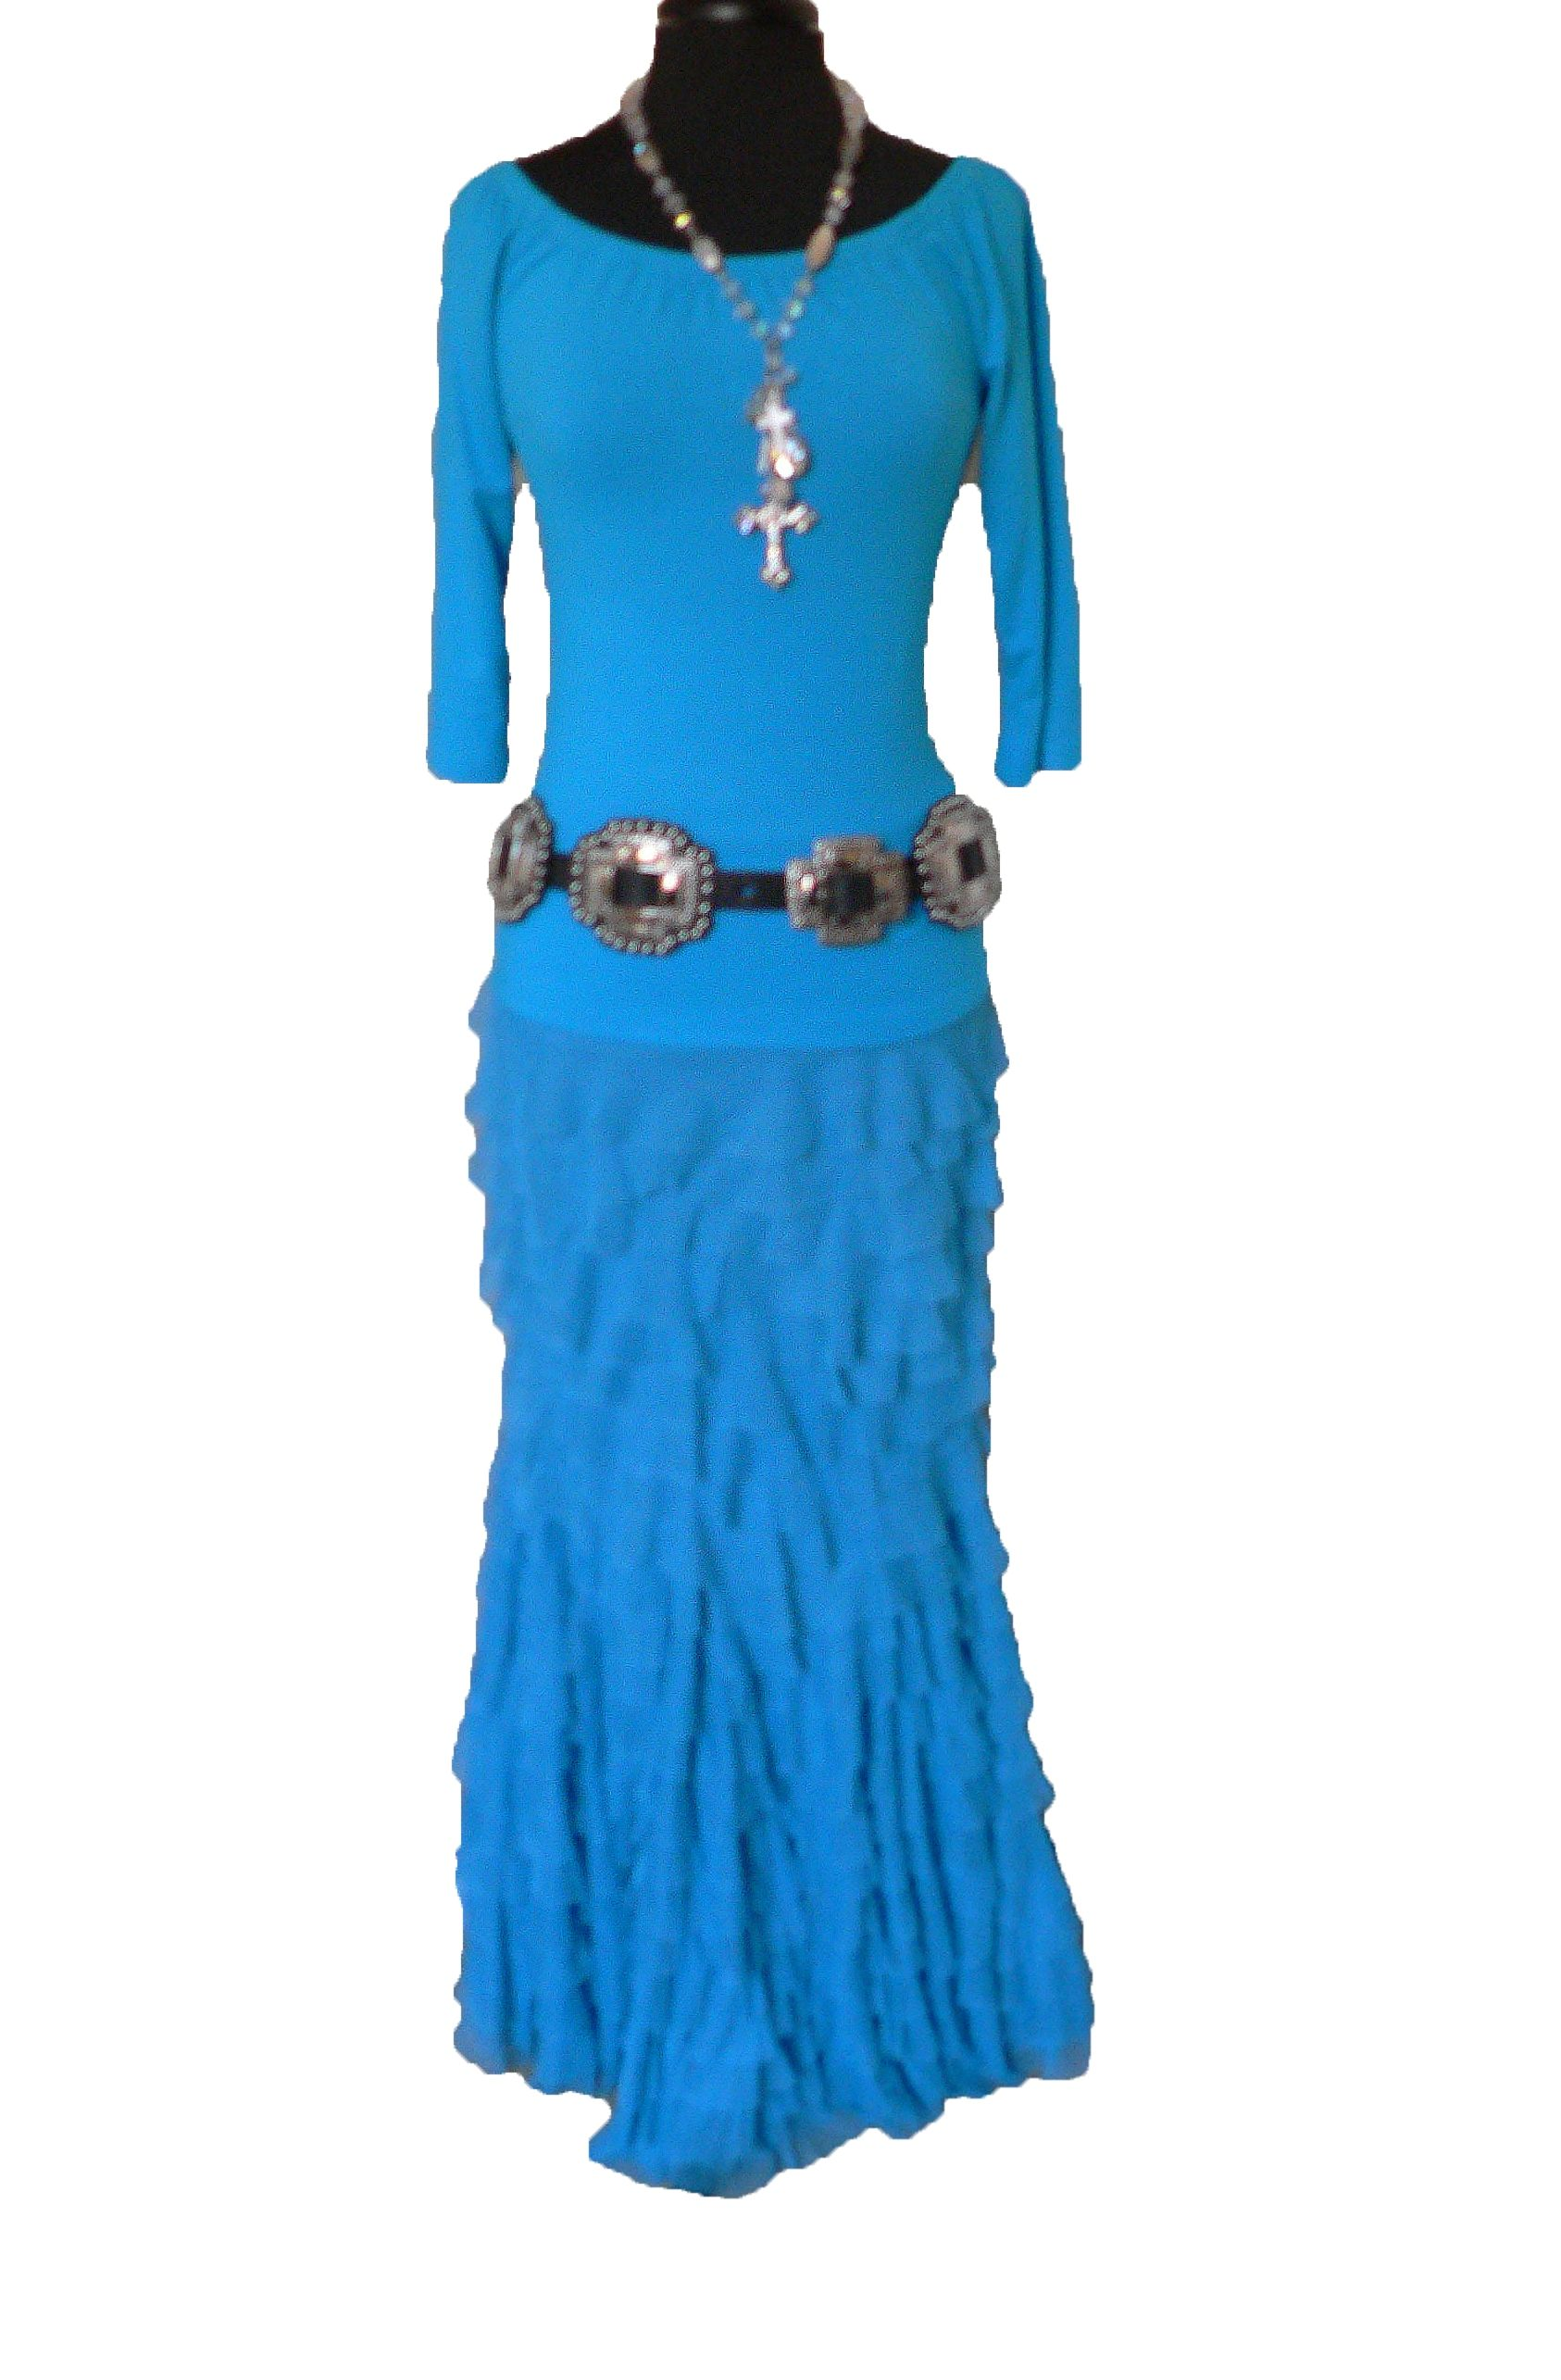 Colorful Turquoise With Romantic Rufflesmy Favorite Sexy Outfit